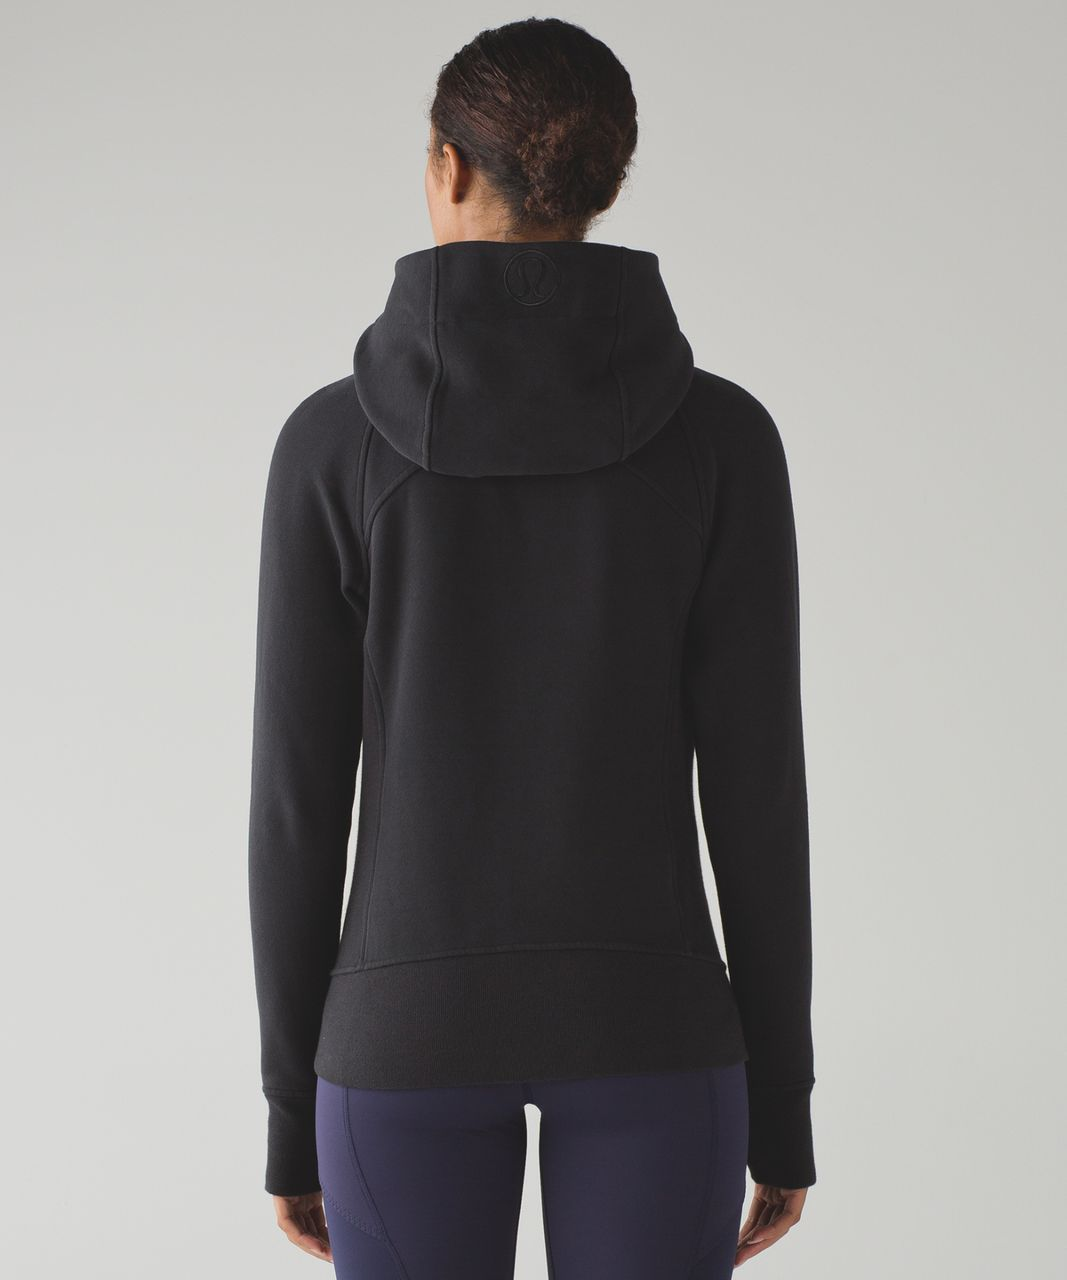 Lululemon Scuba Hoodie *Light Cotton Fleece - Black (First Release)